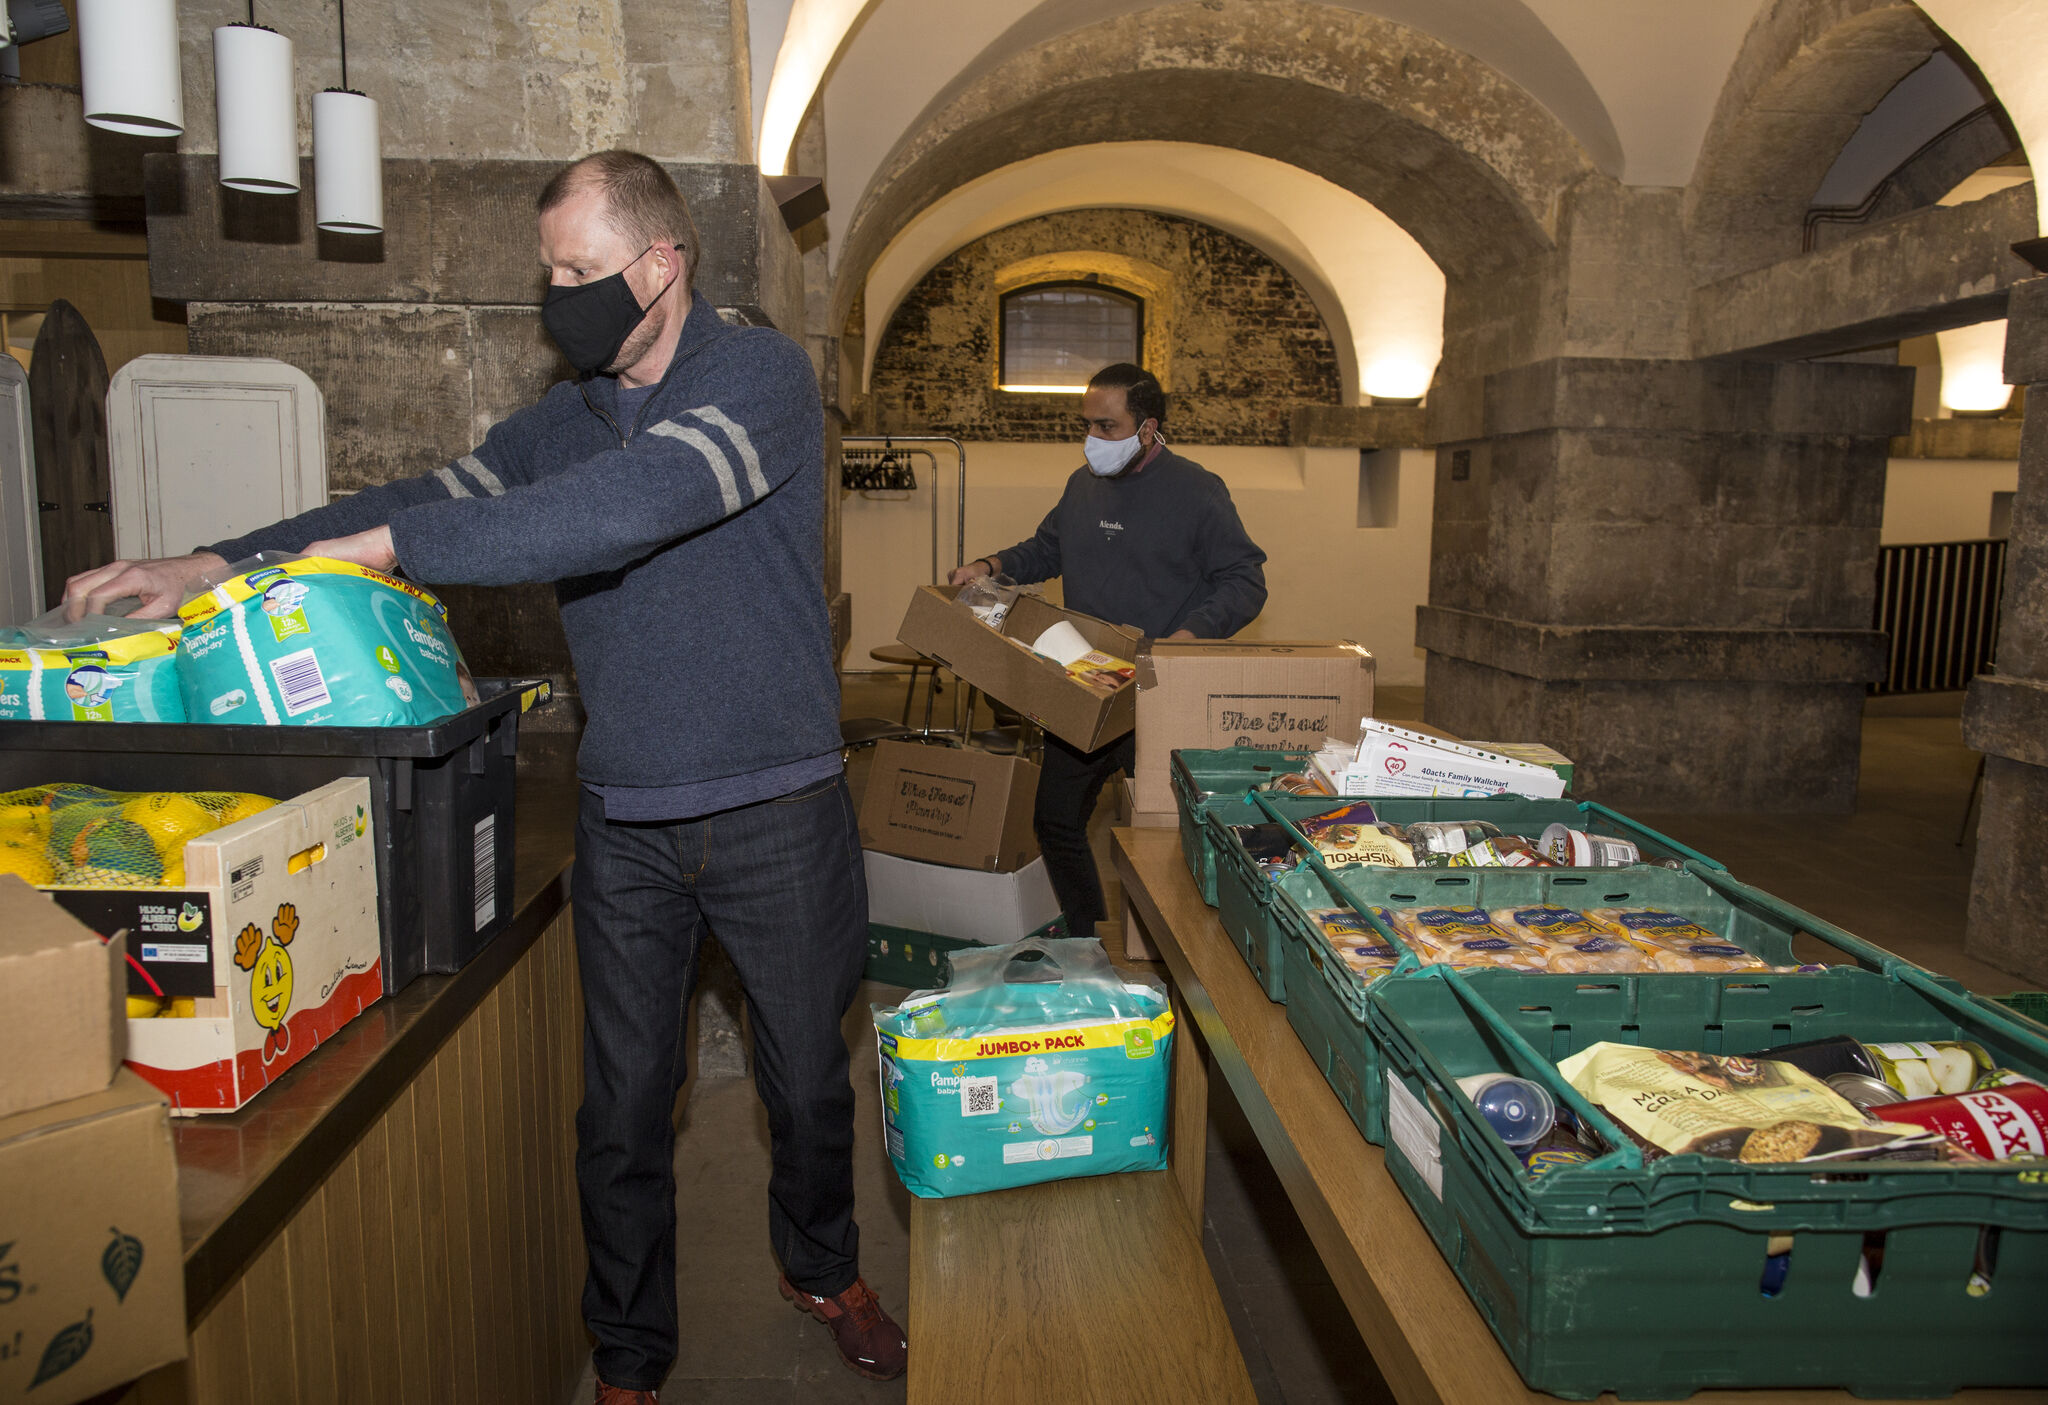 Image of 2 males working in the food bank